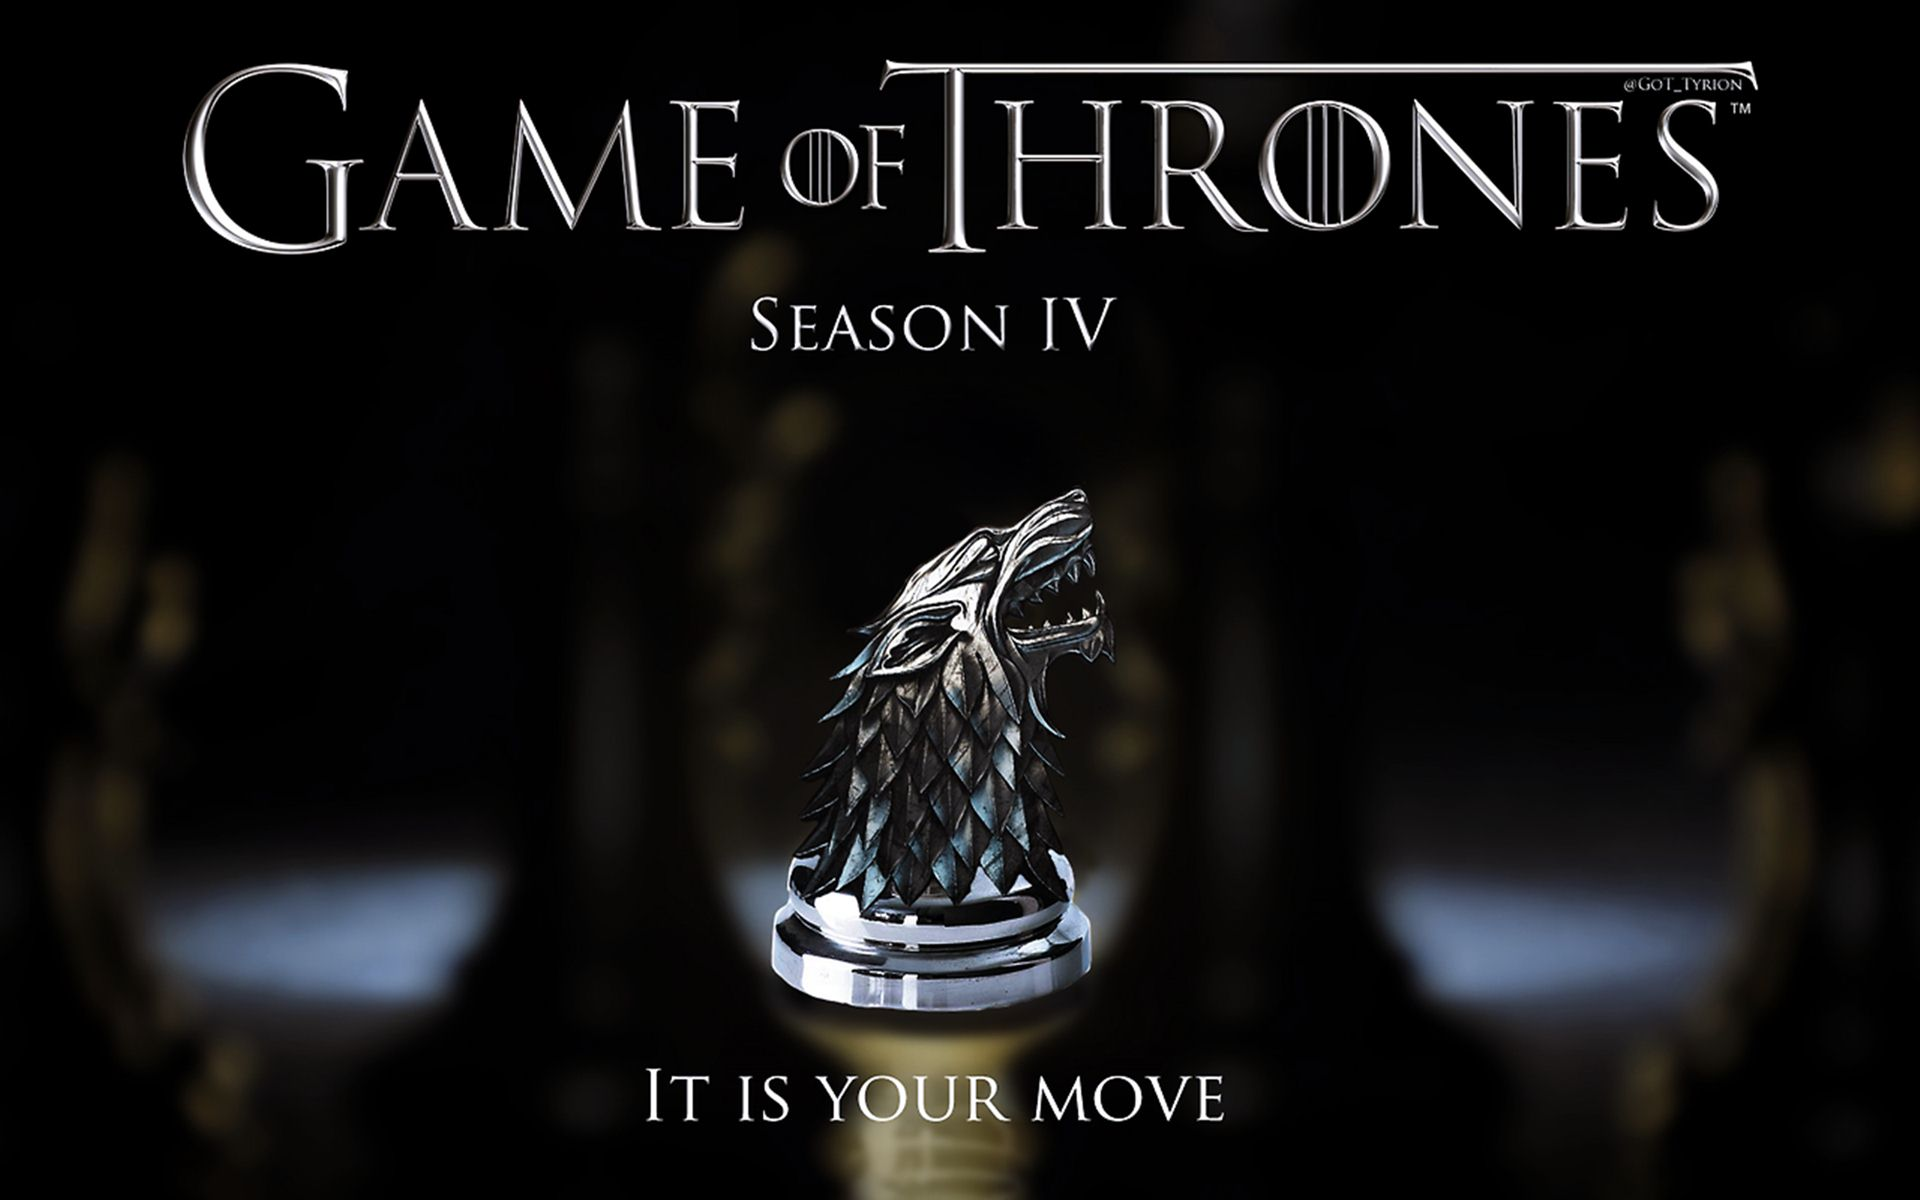 50 game of thrones hd wallpapers on wallpapersafari - Games hd wallpapers 1920x1200 ...